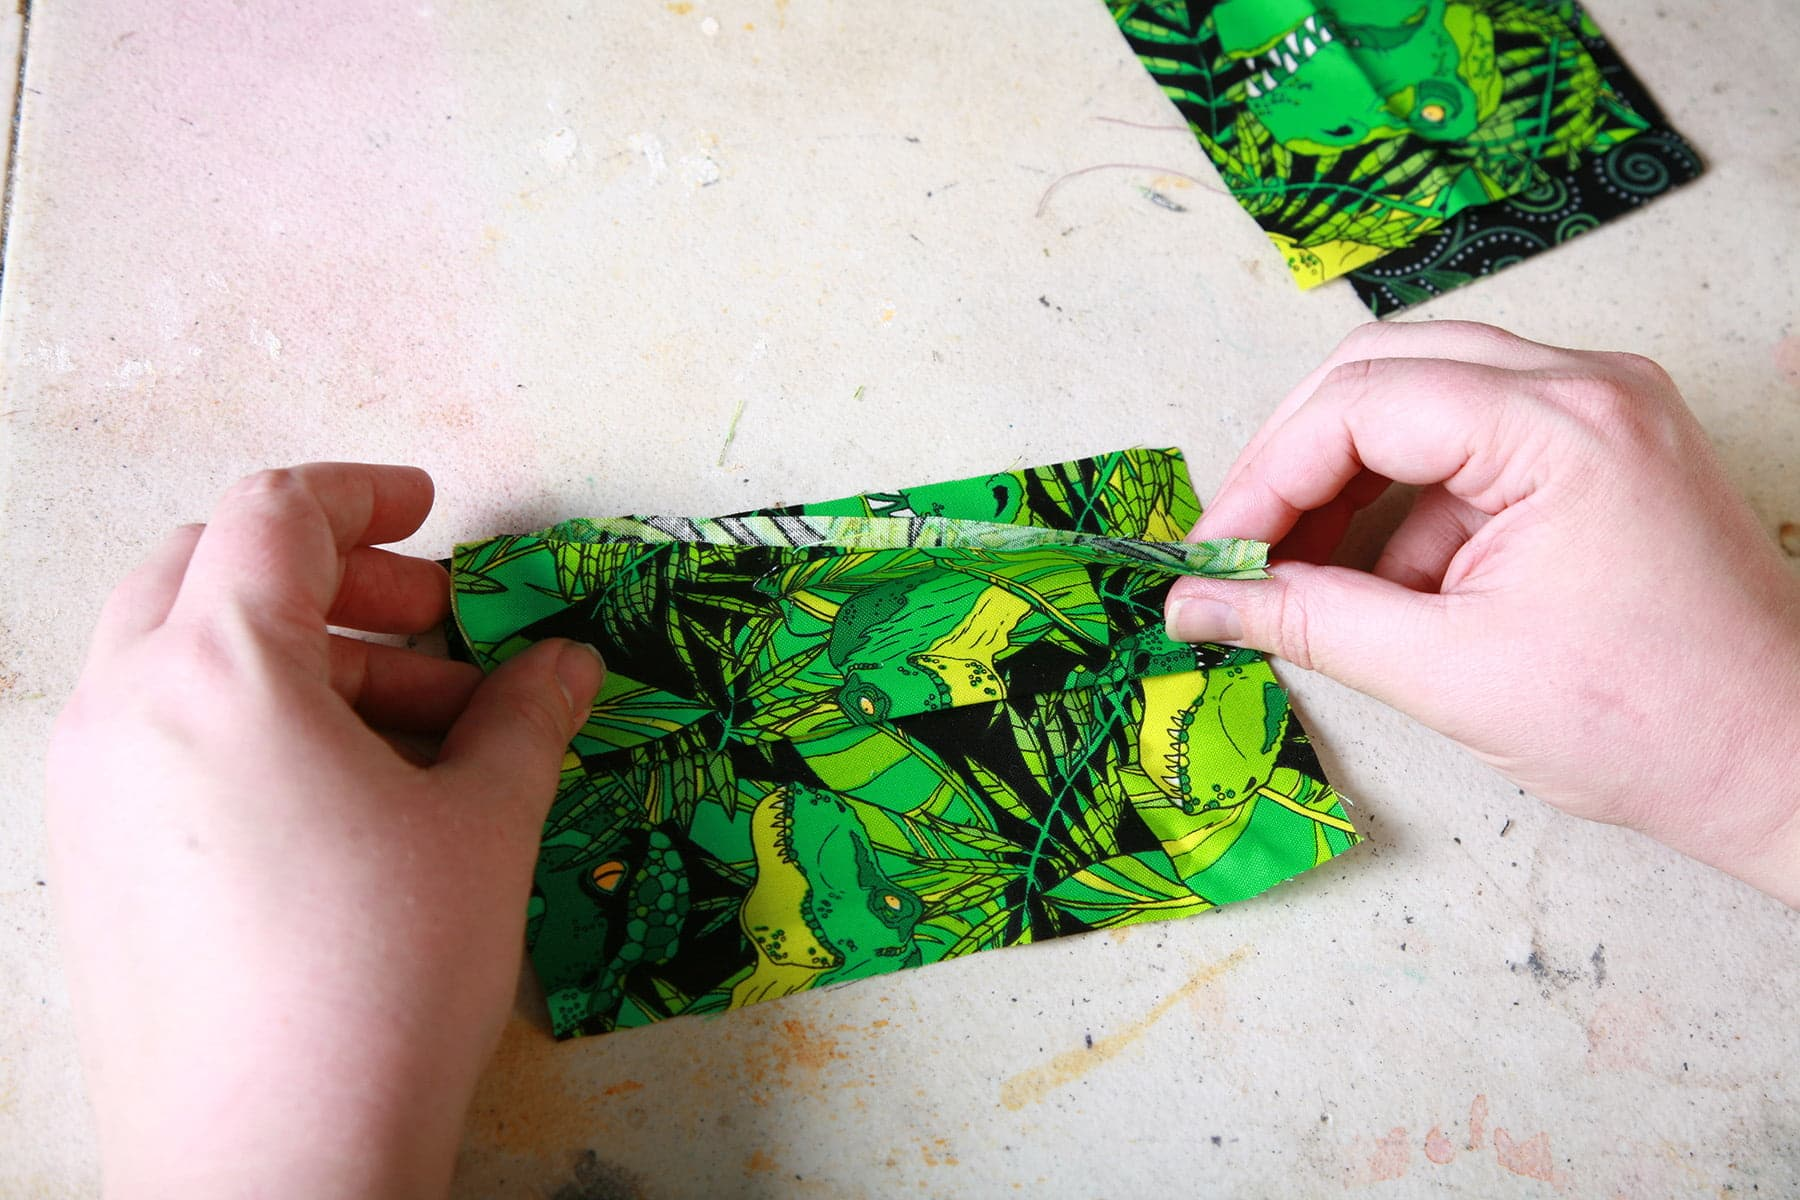 Two hands are shown folding a piece of fabric in half.